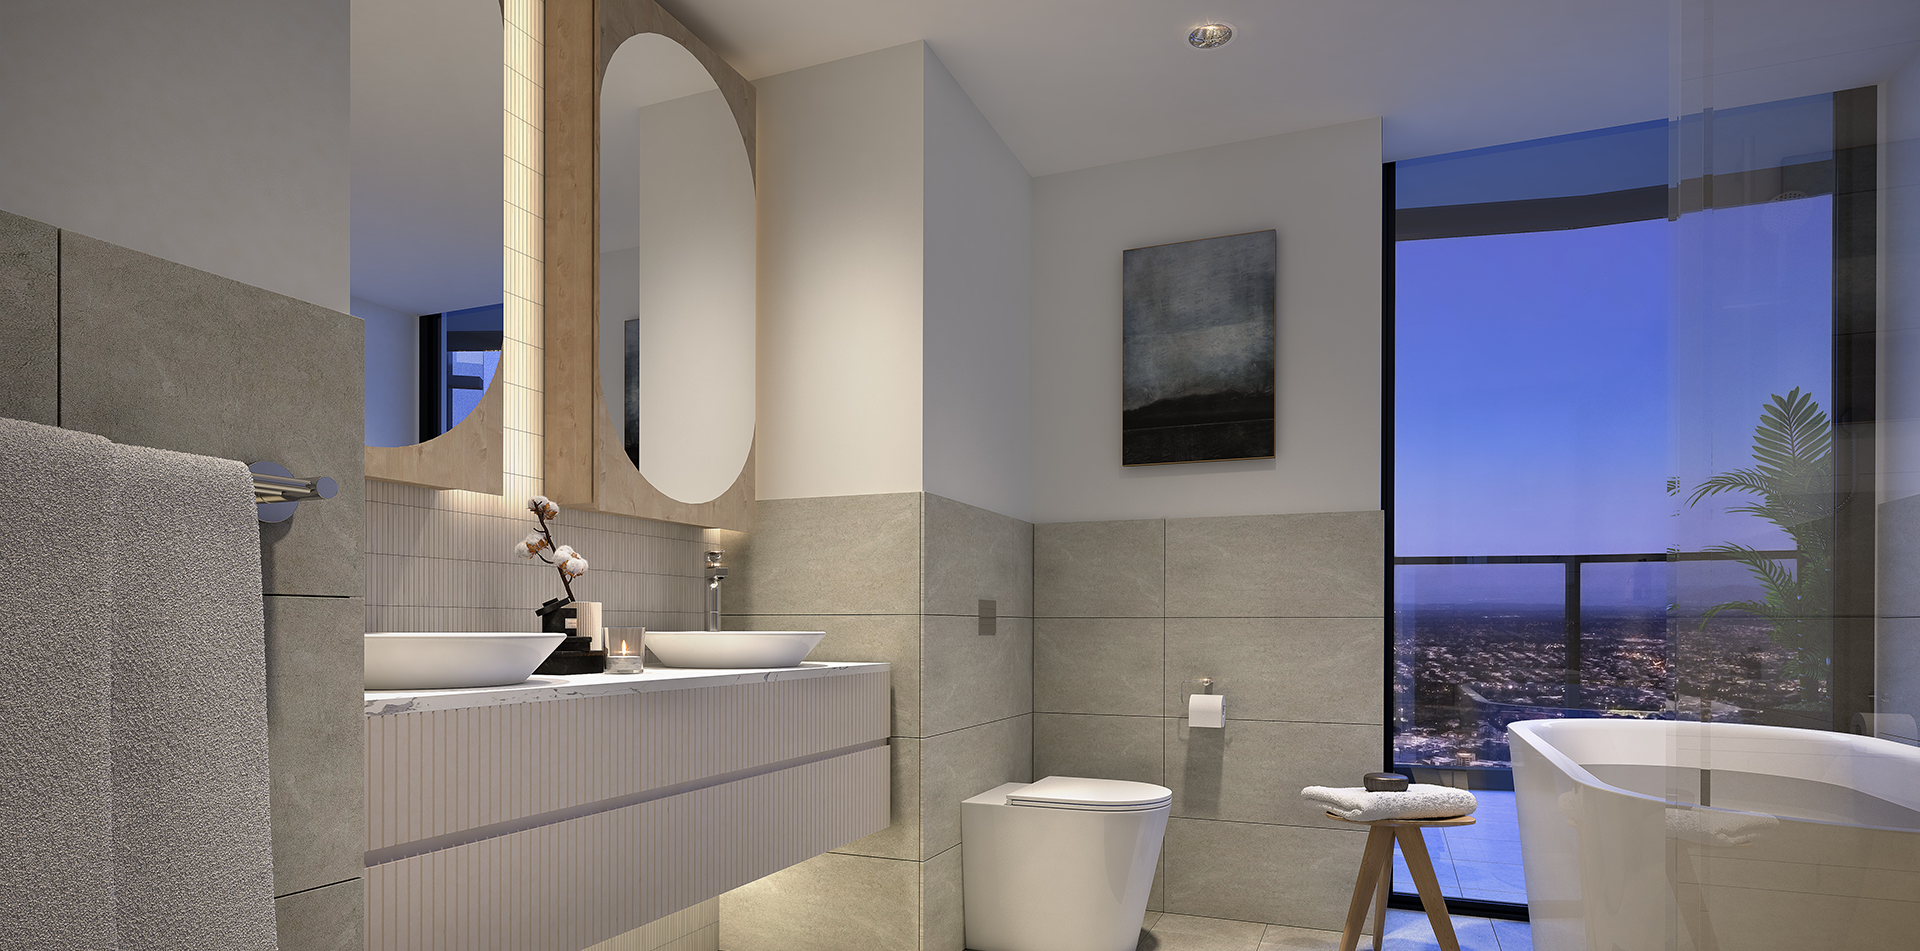 Copy of The One Residences 3 bed Bathroo